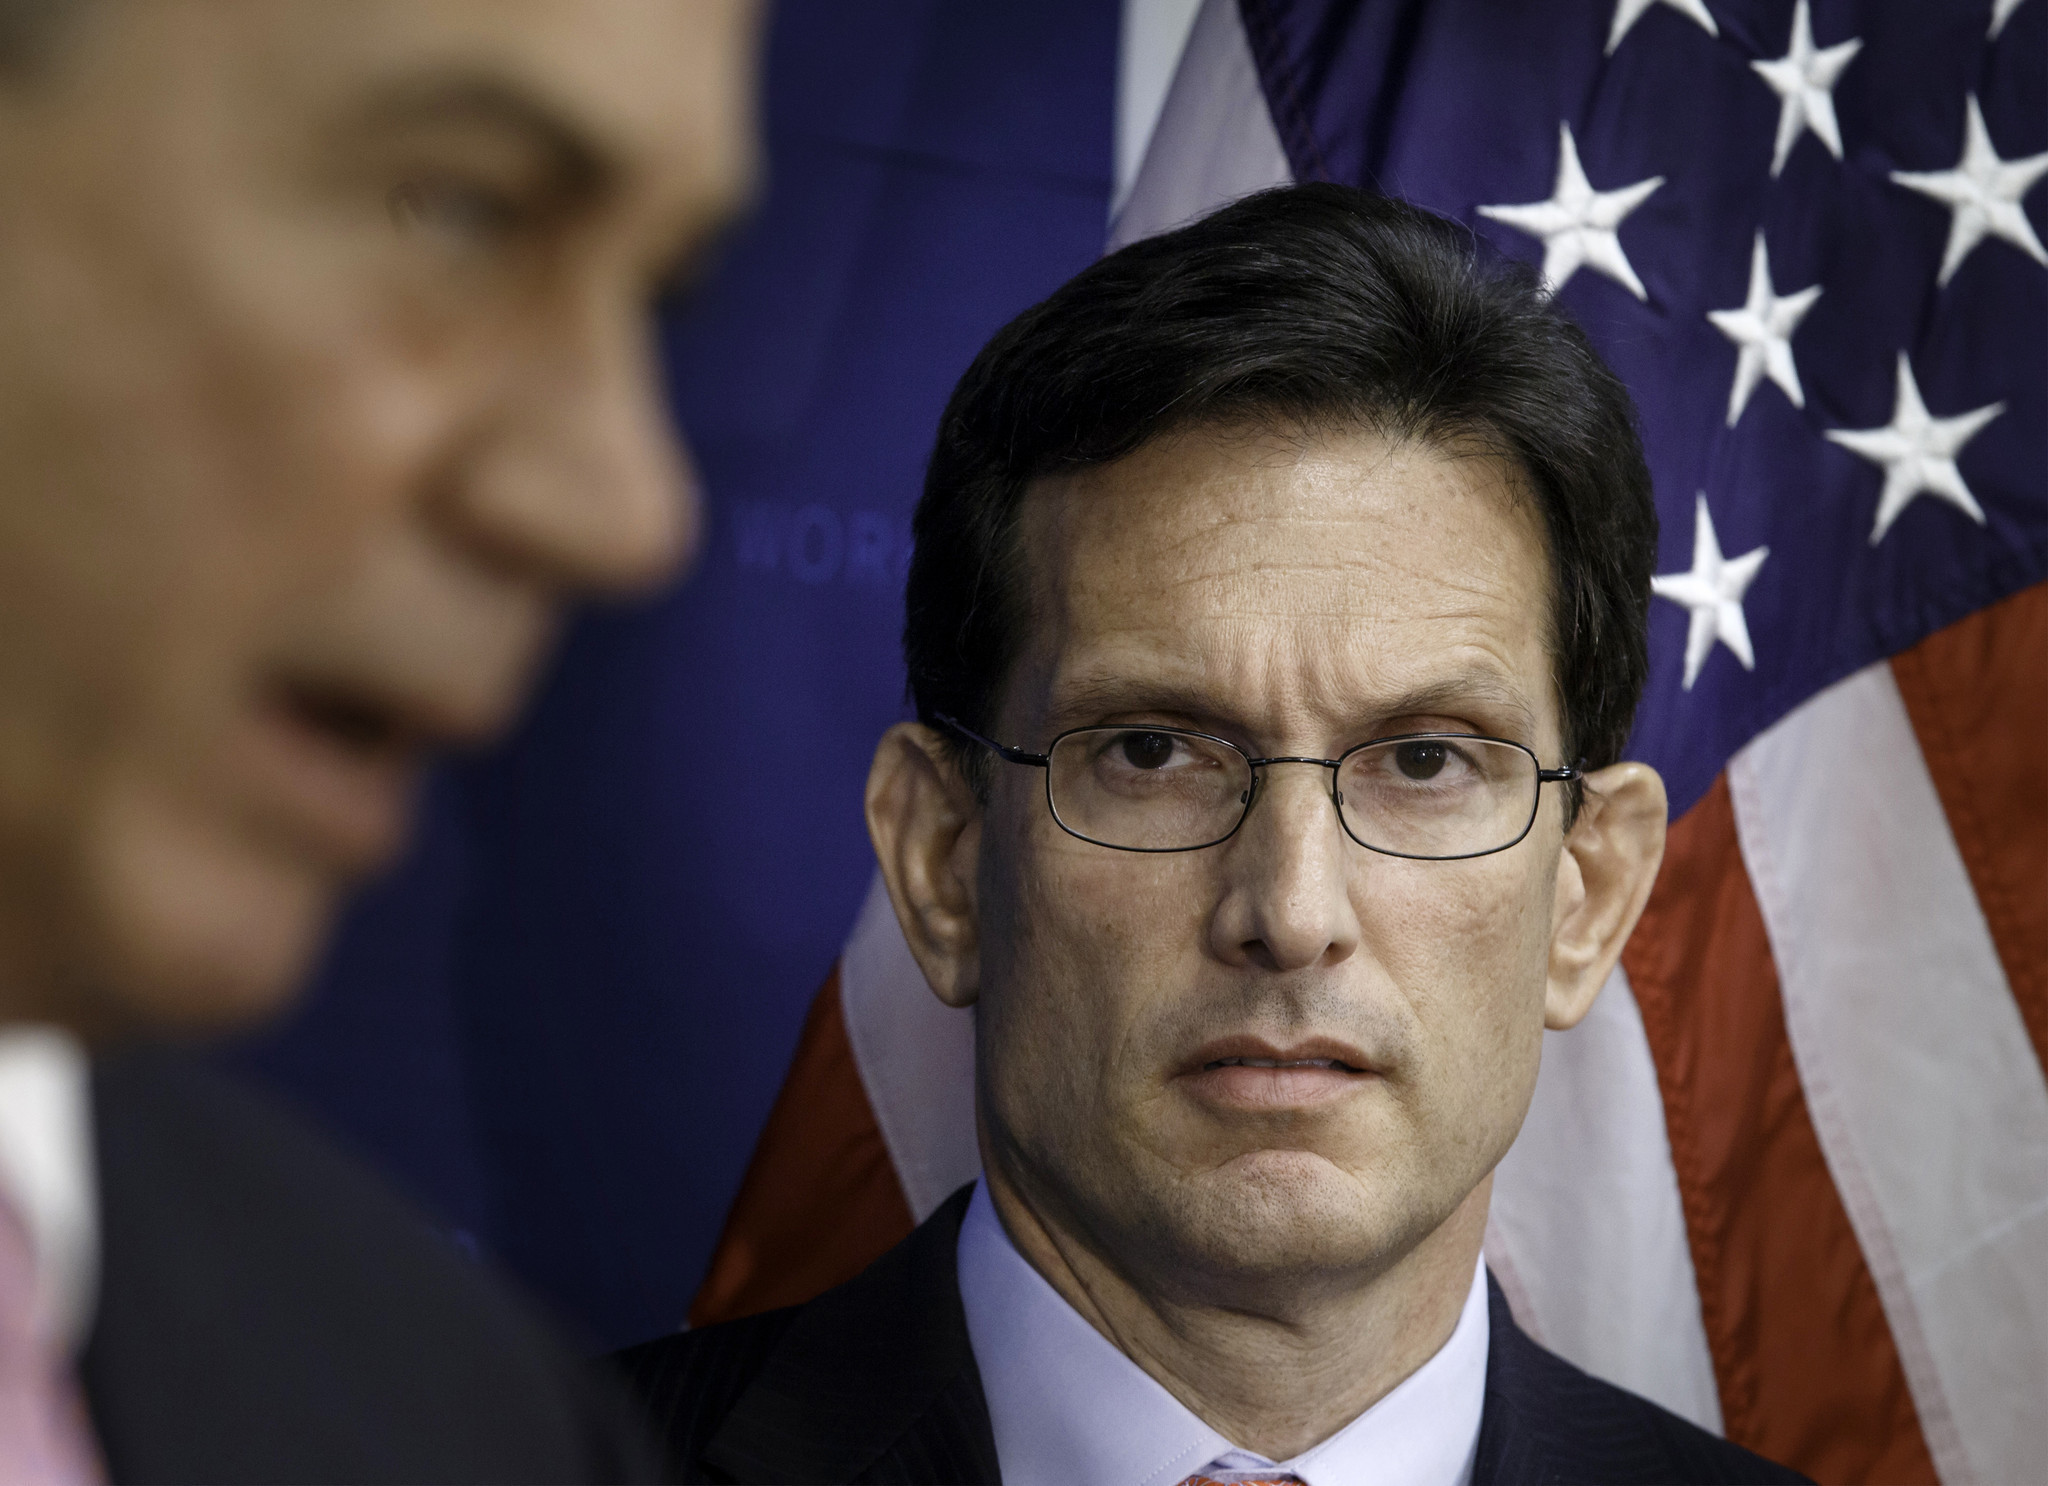 Eric Cantor set to resign from Congress in August, he says